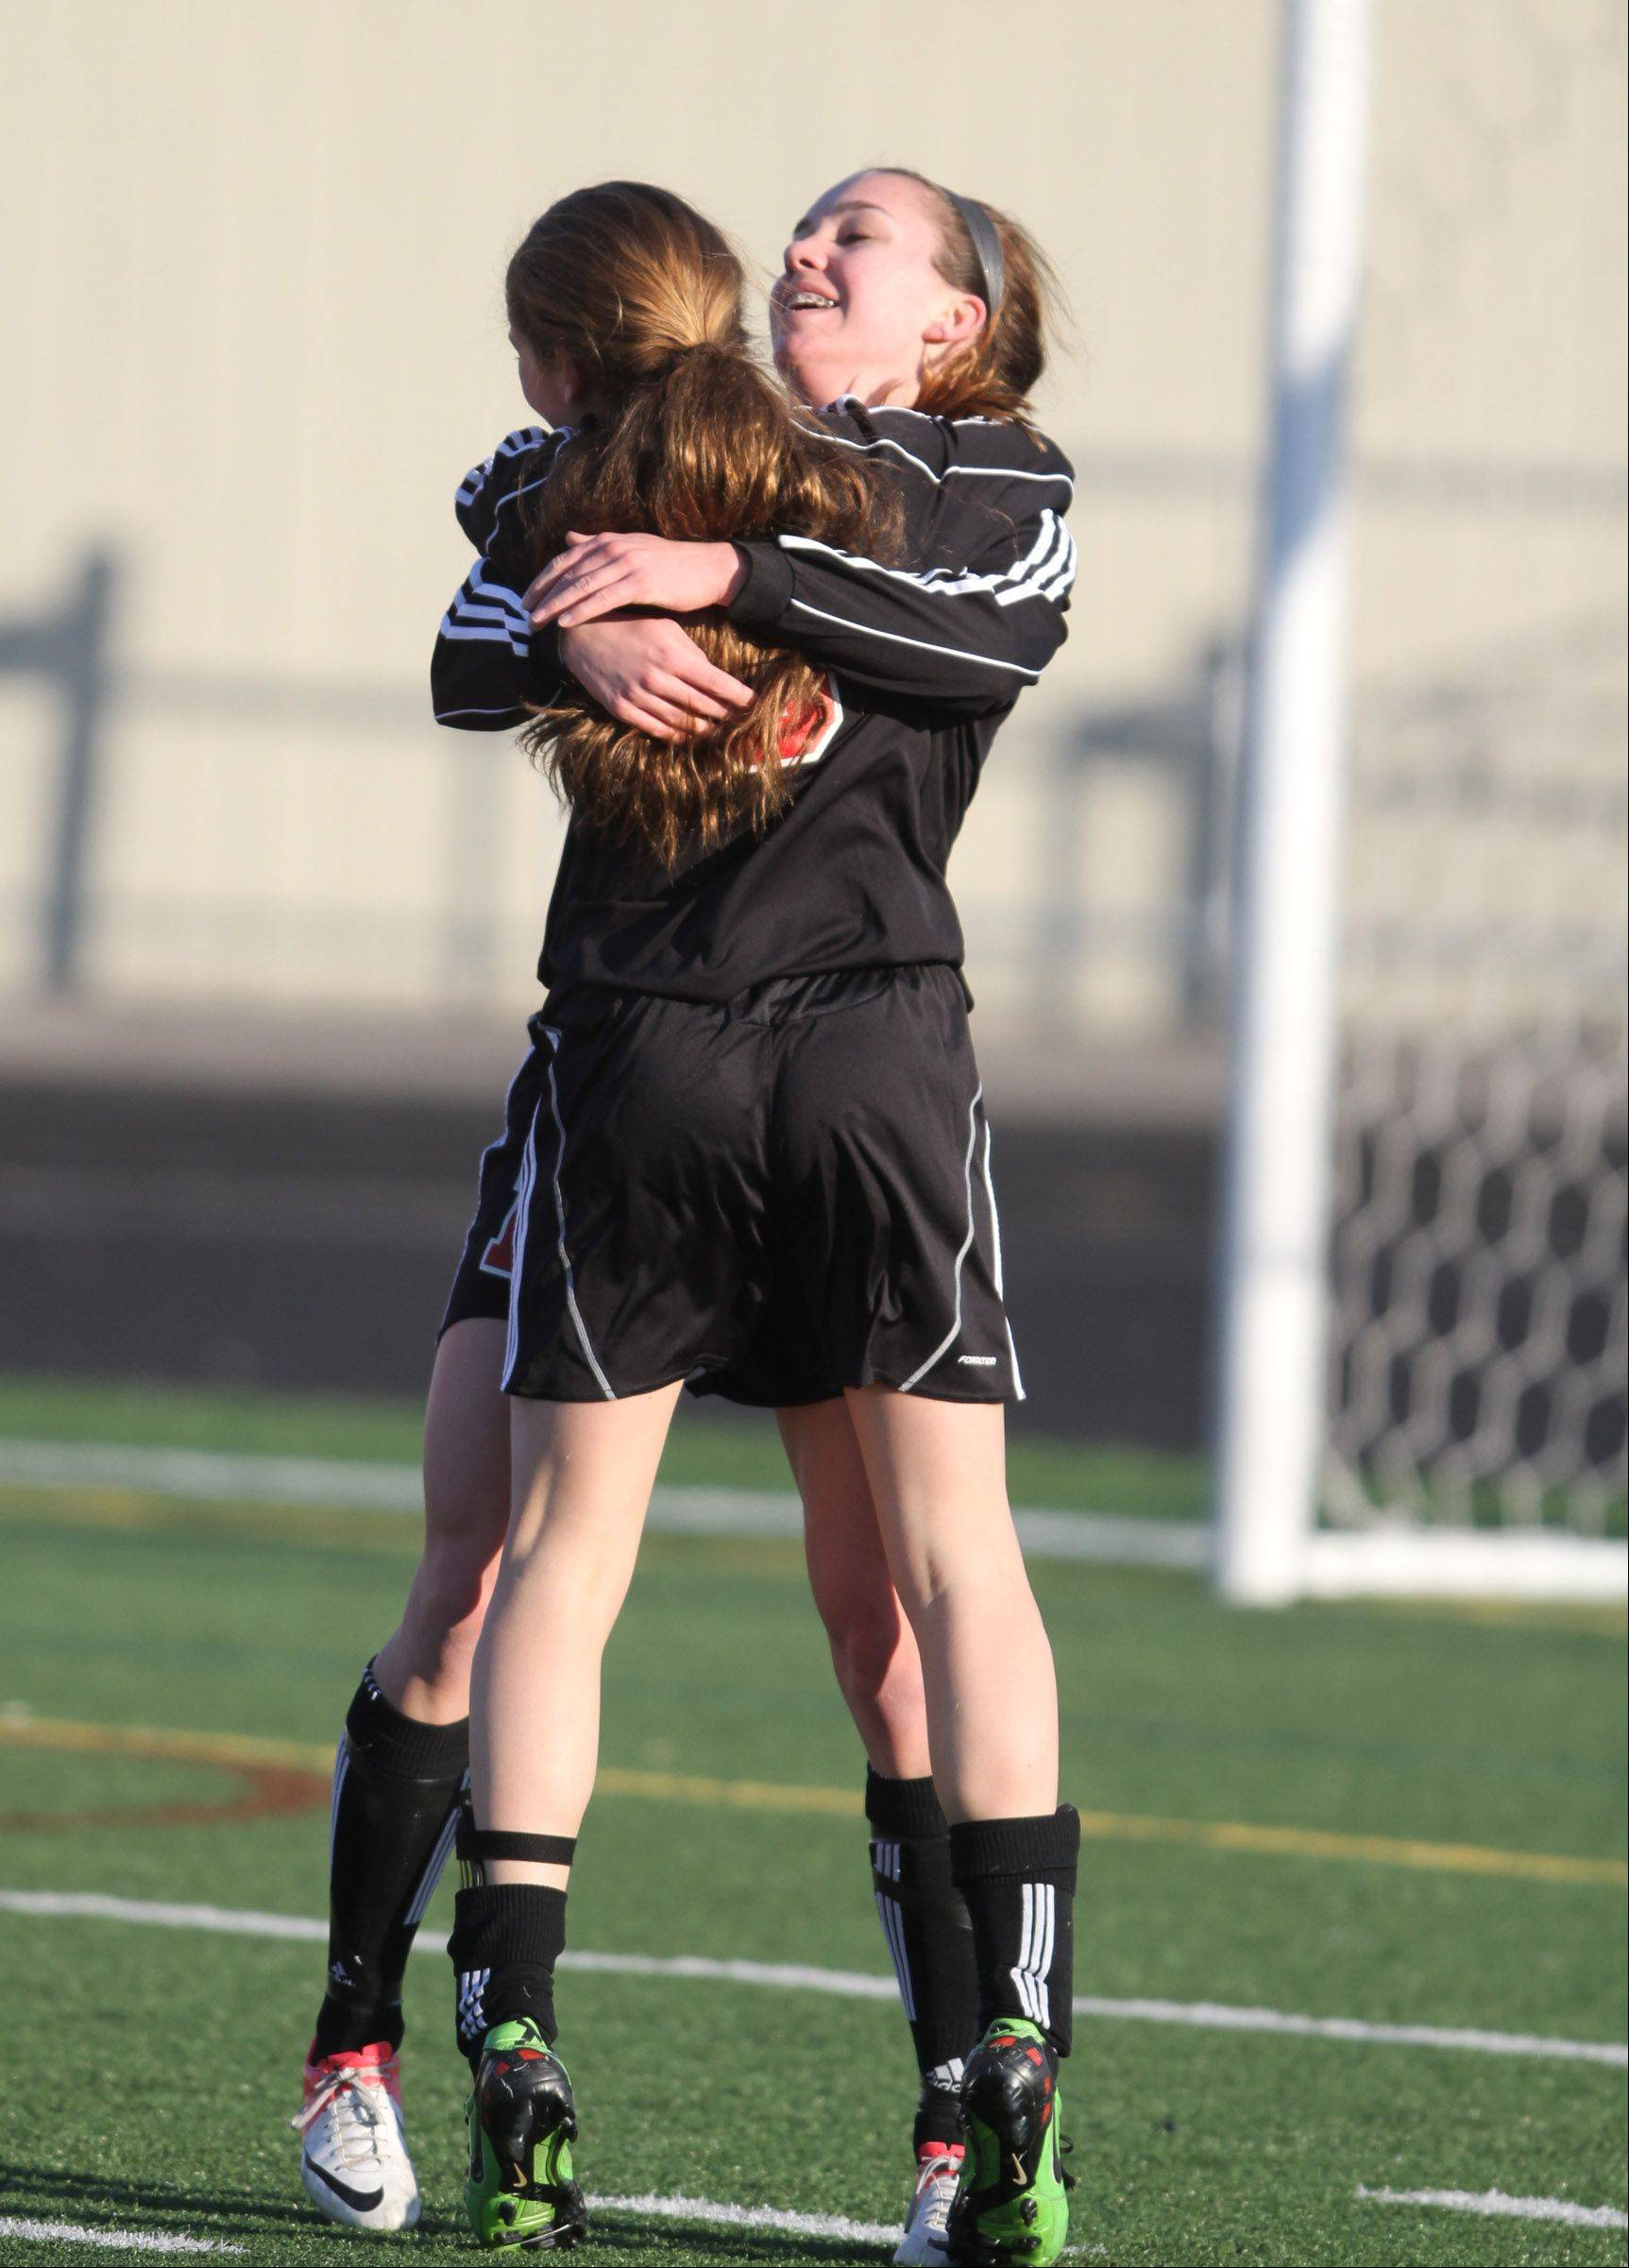 Barrington's Jenna Szczensny, facing forward, gets a hug from Kelsey Muniz after scoring against Schaumburg at Schaumburg on Friday.